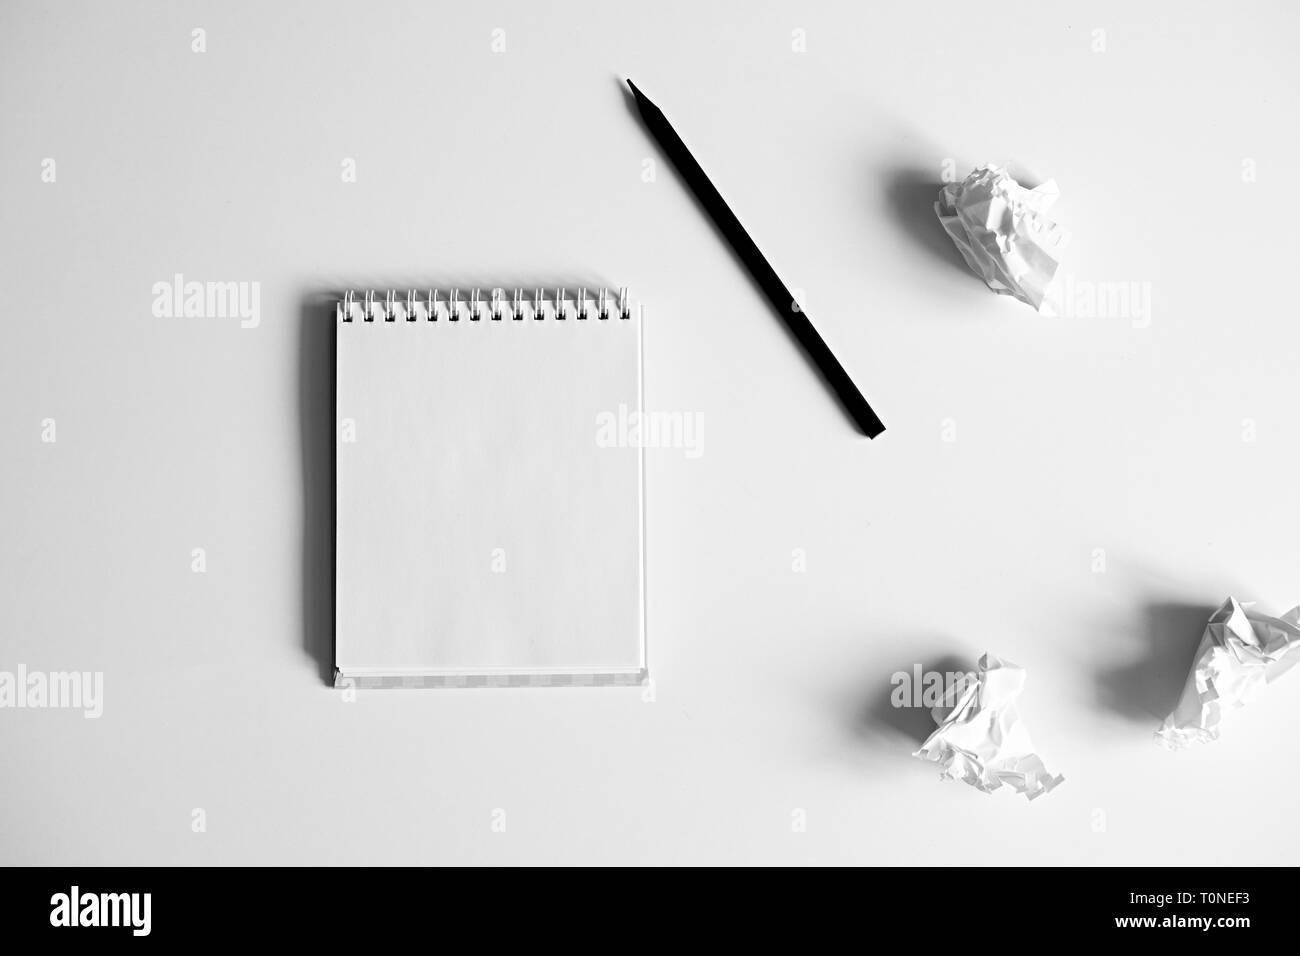 Flat lay of blank white notepad, pencil and crumpled paper on white background. Concept of inspiration and lack of ideas. Creativity. - Stock Image